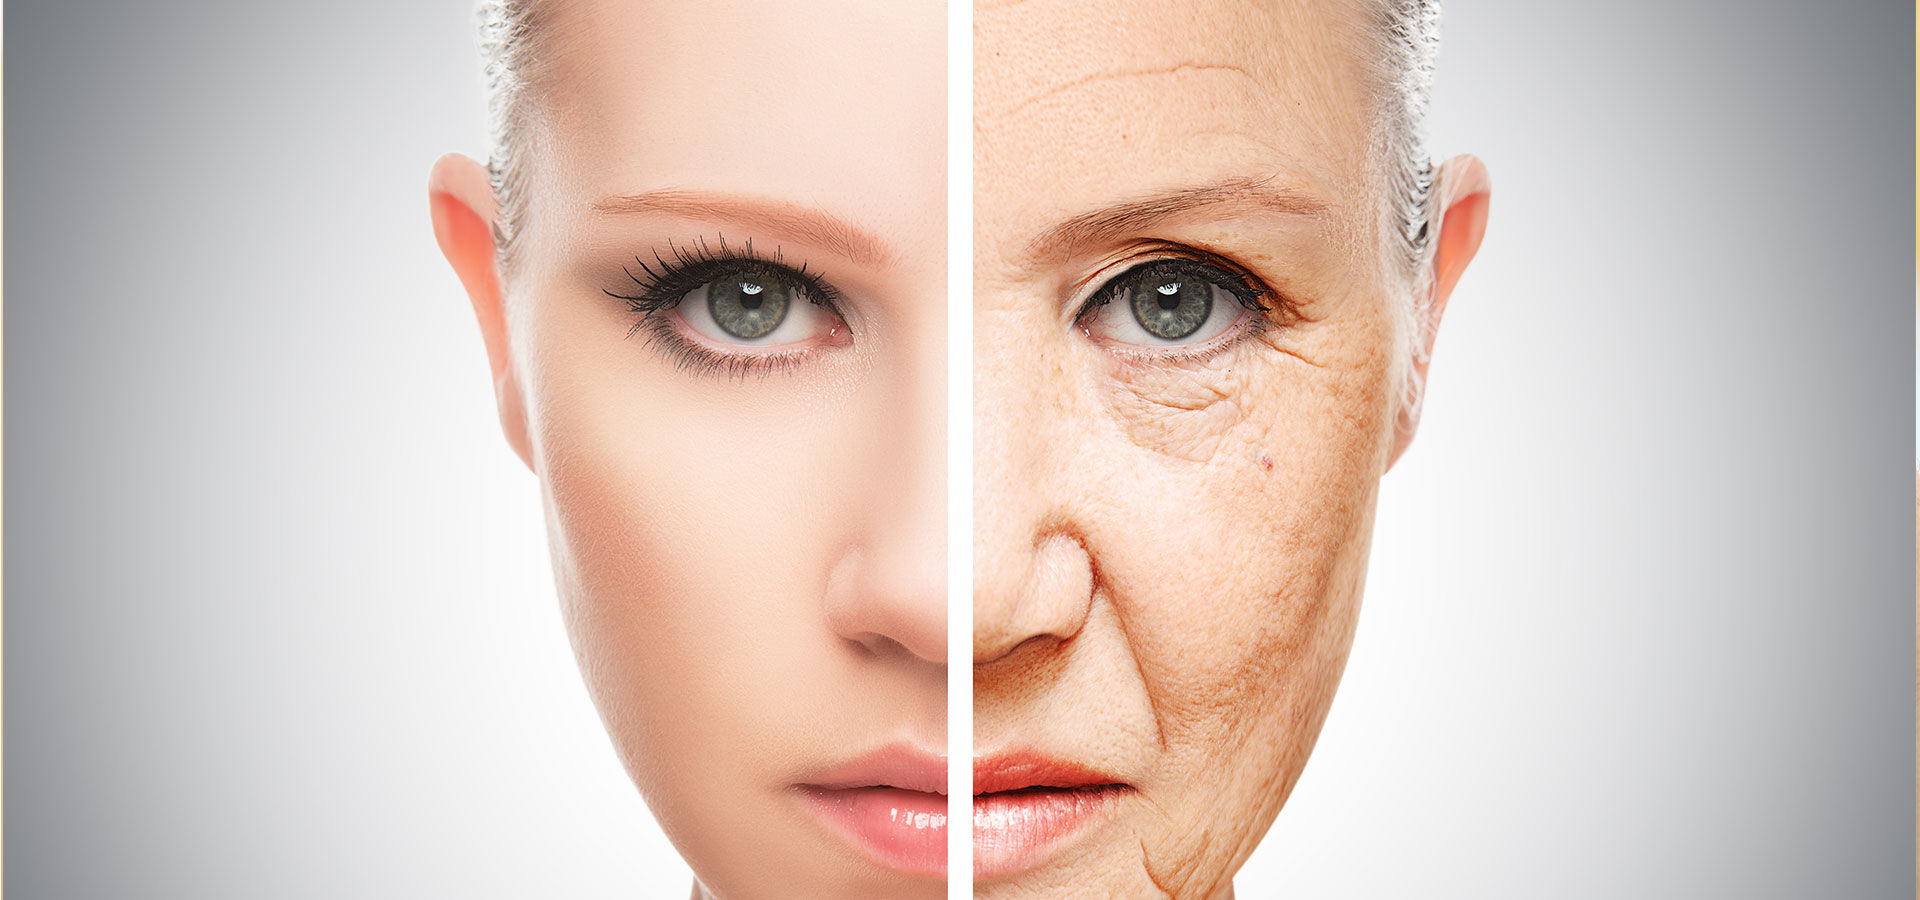 comparison of a womans face before and after a Collagen Building Wrinkle Treatment